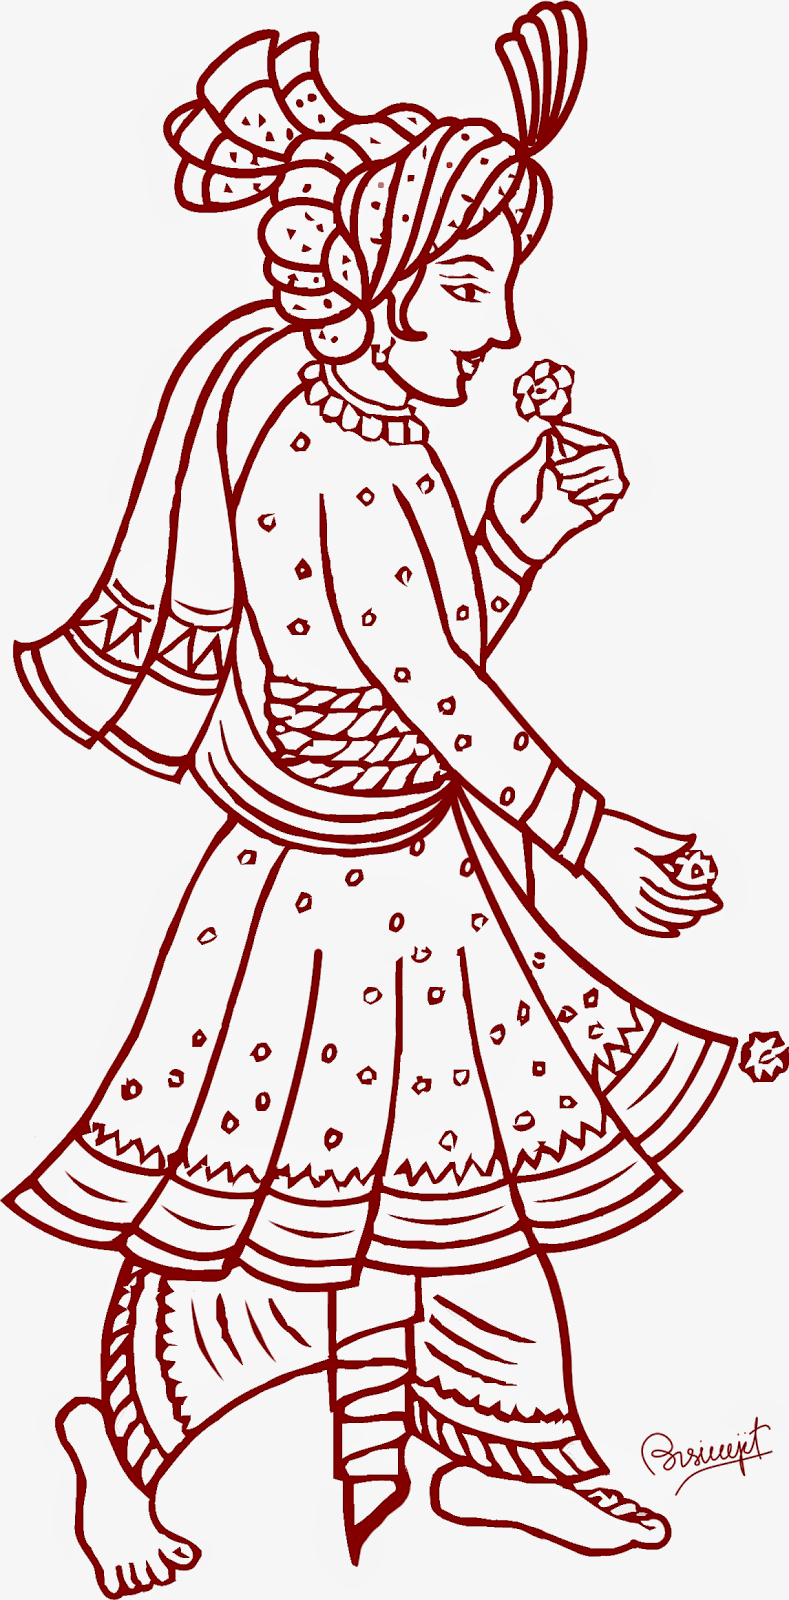 Groom clipart wedding indian. Png dibujo by noemi